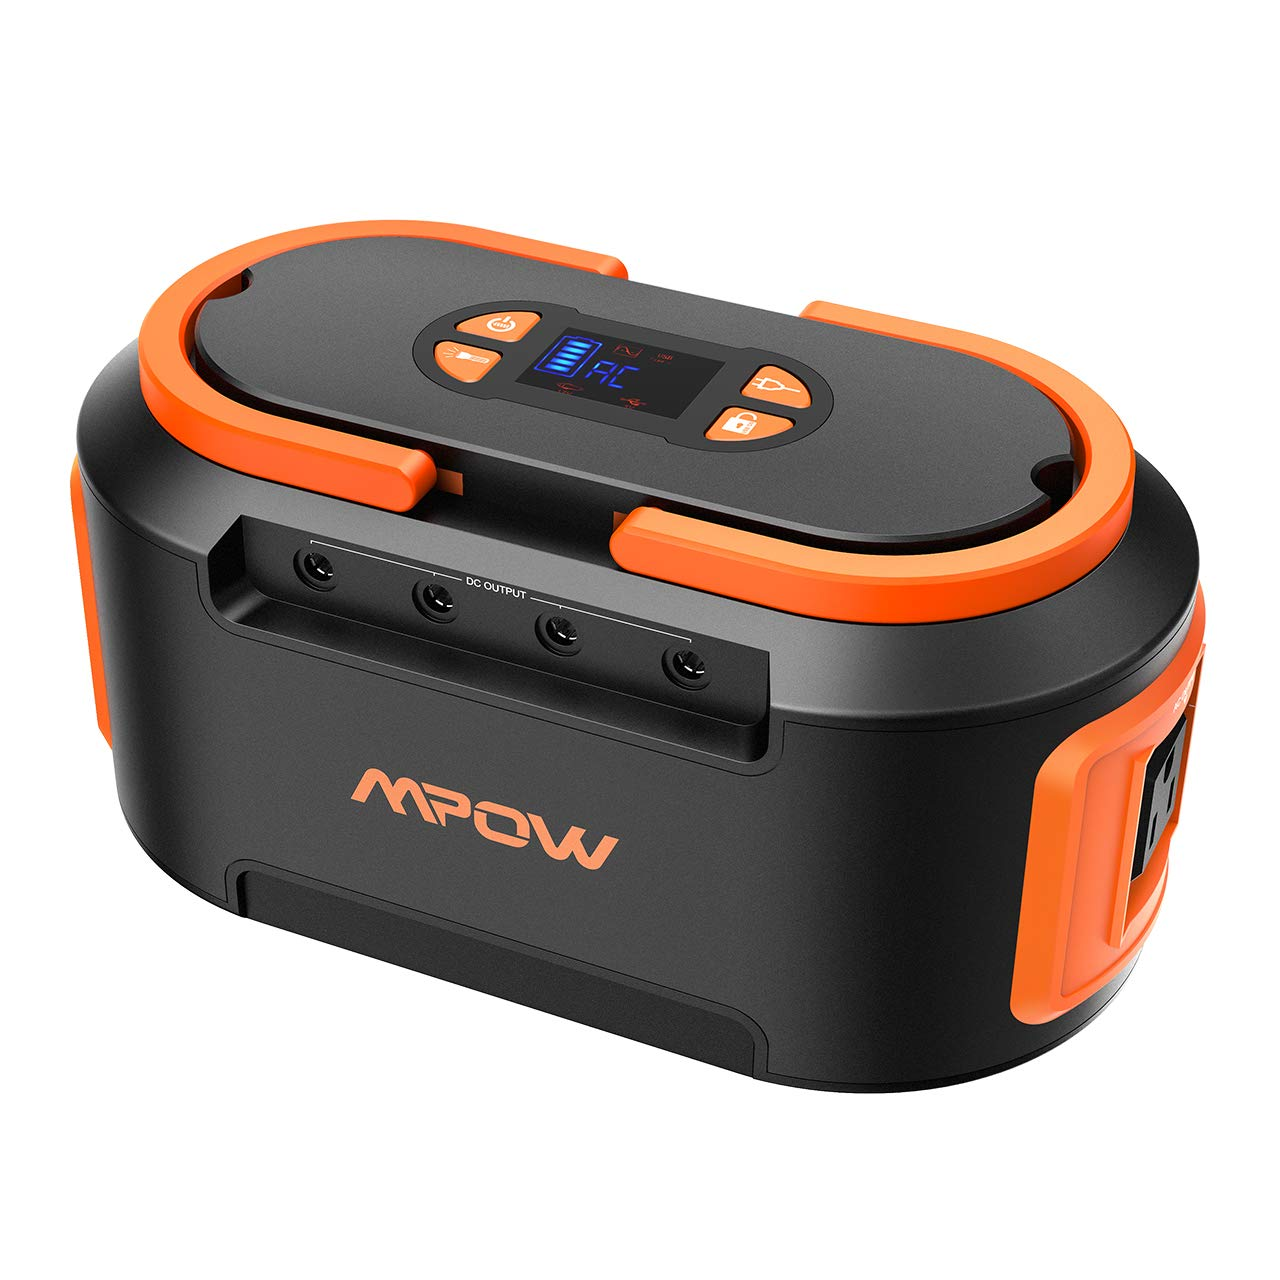 Mpow 222Wh 60000mAh Portable Solar Generator, Power Station Generator with AC Outlets, 4 DC Ports, 4 USB (Quick Charger 3.0, USB C) Lithium Battery Backup for Emergence Travel Home Camping